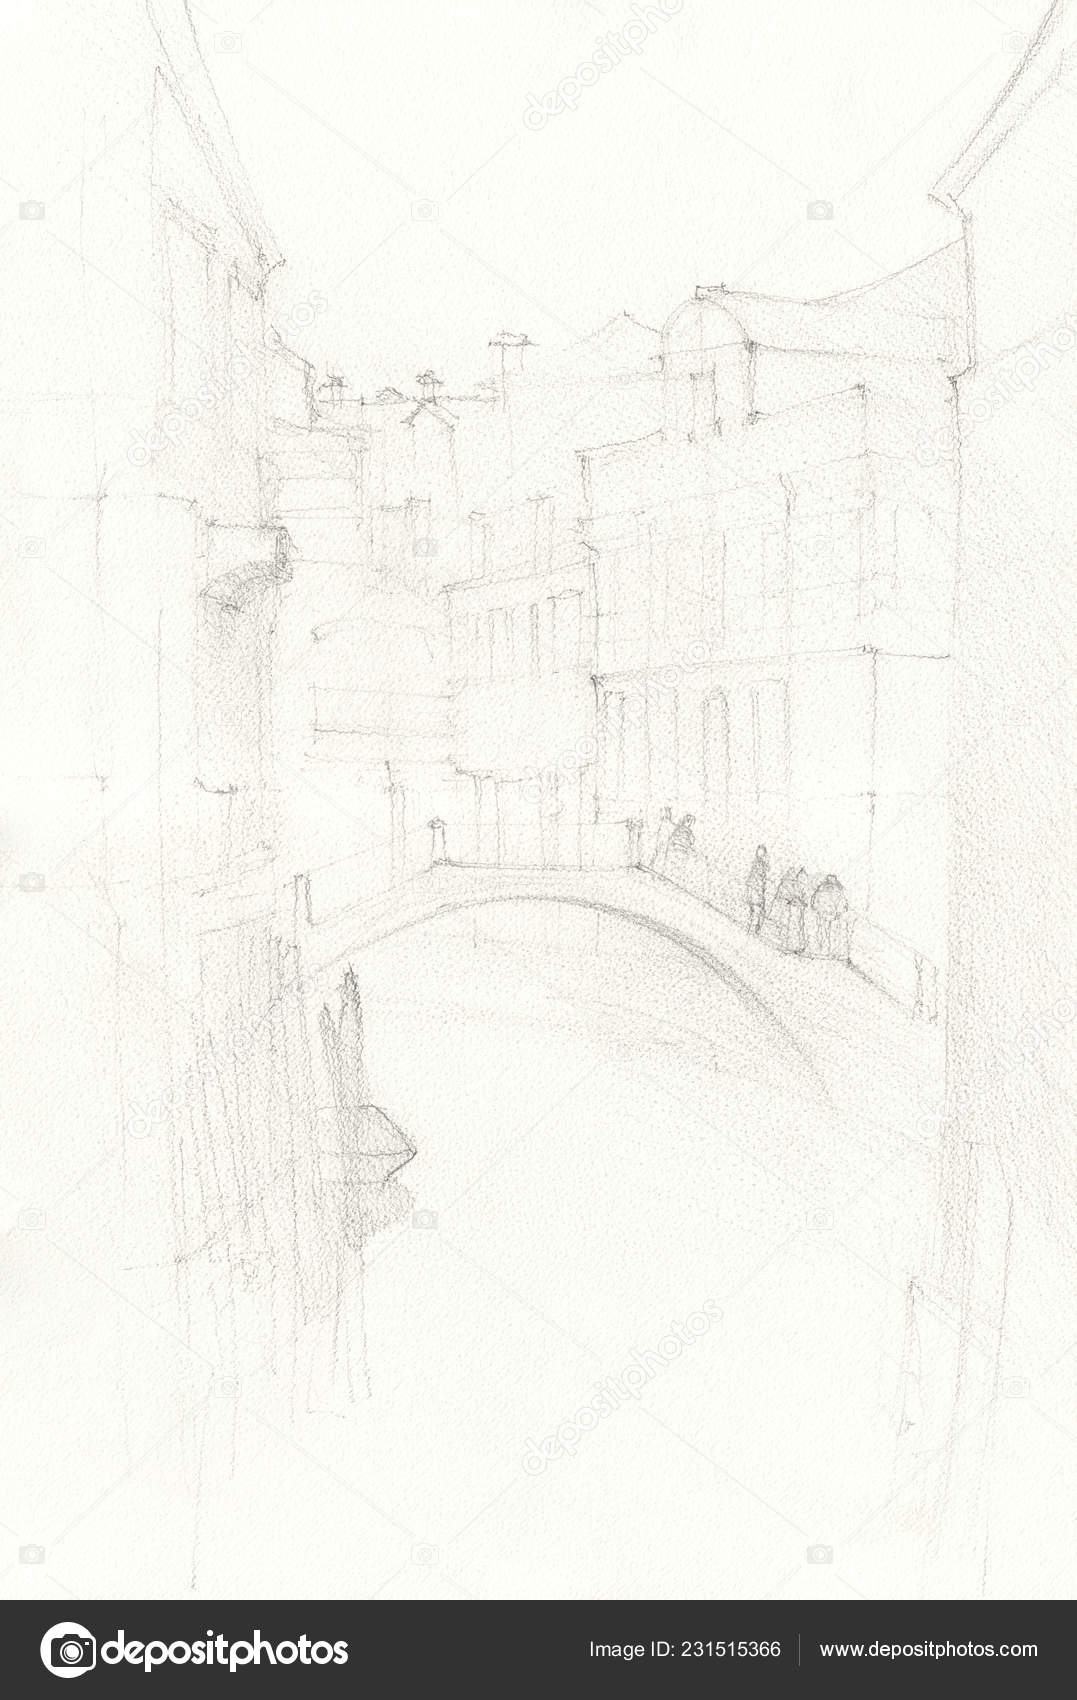 Venice city hand drawn pencil sketch illustration grunge